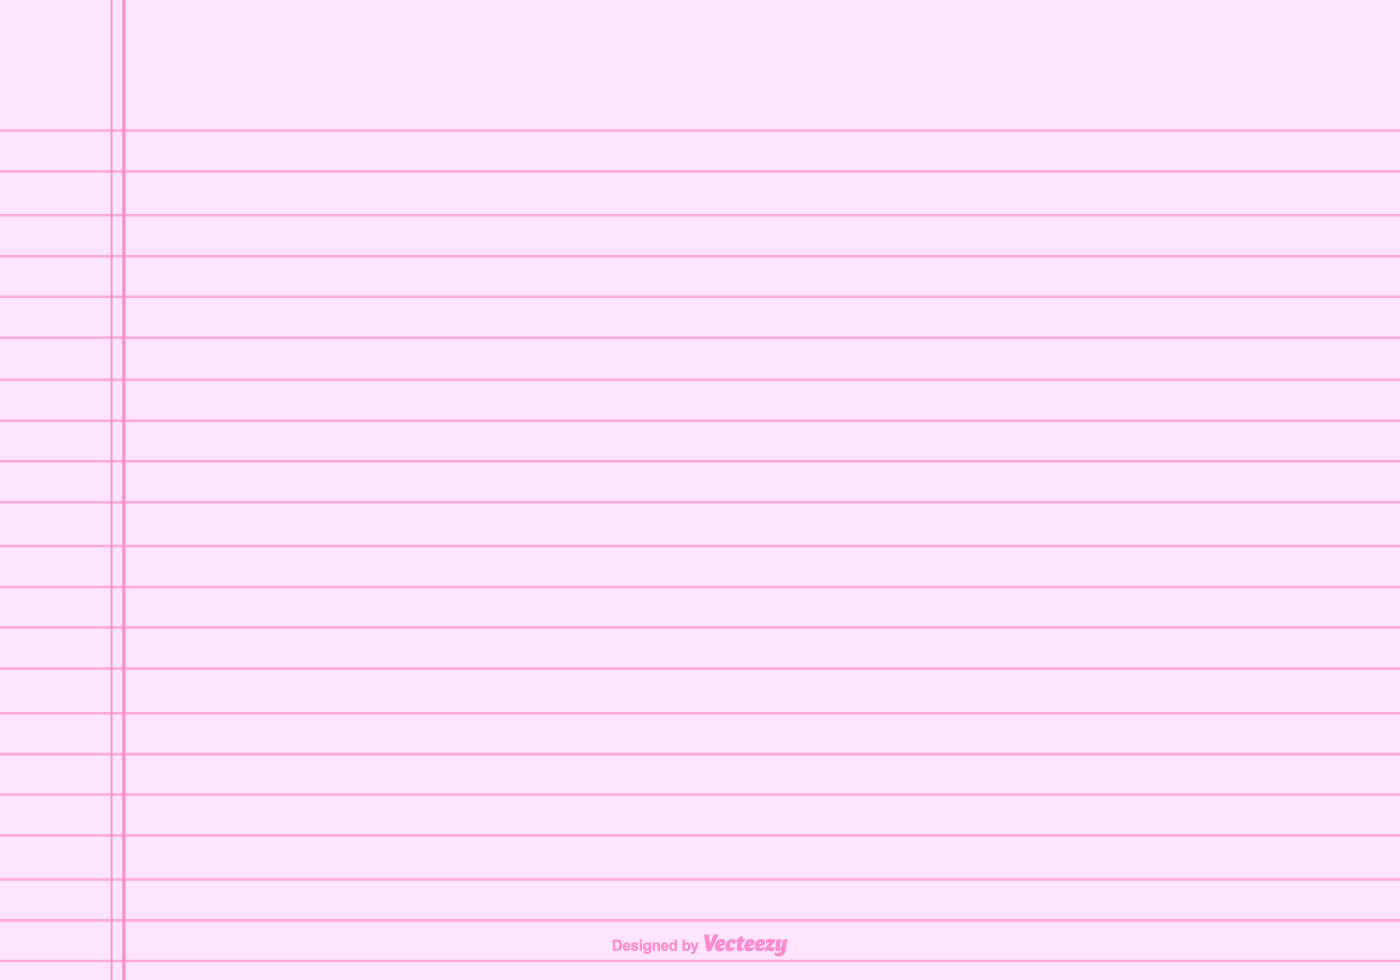 pink lined note paper background download free vector